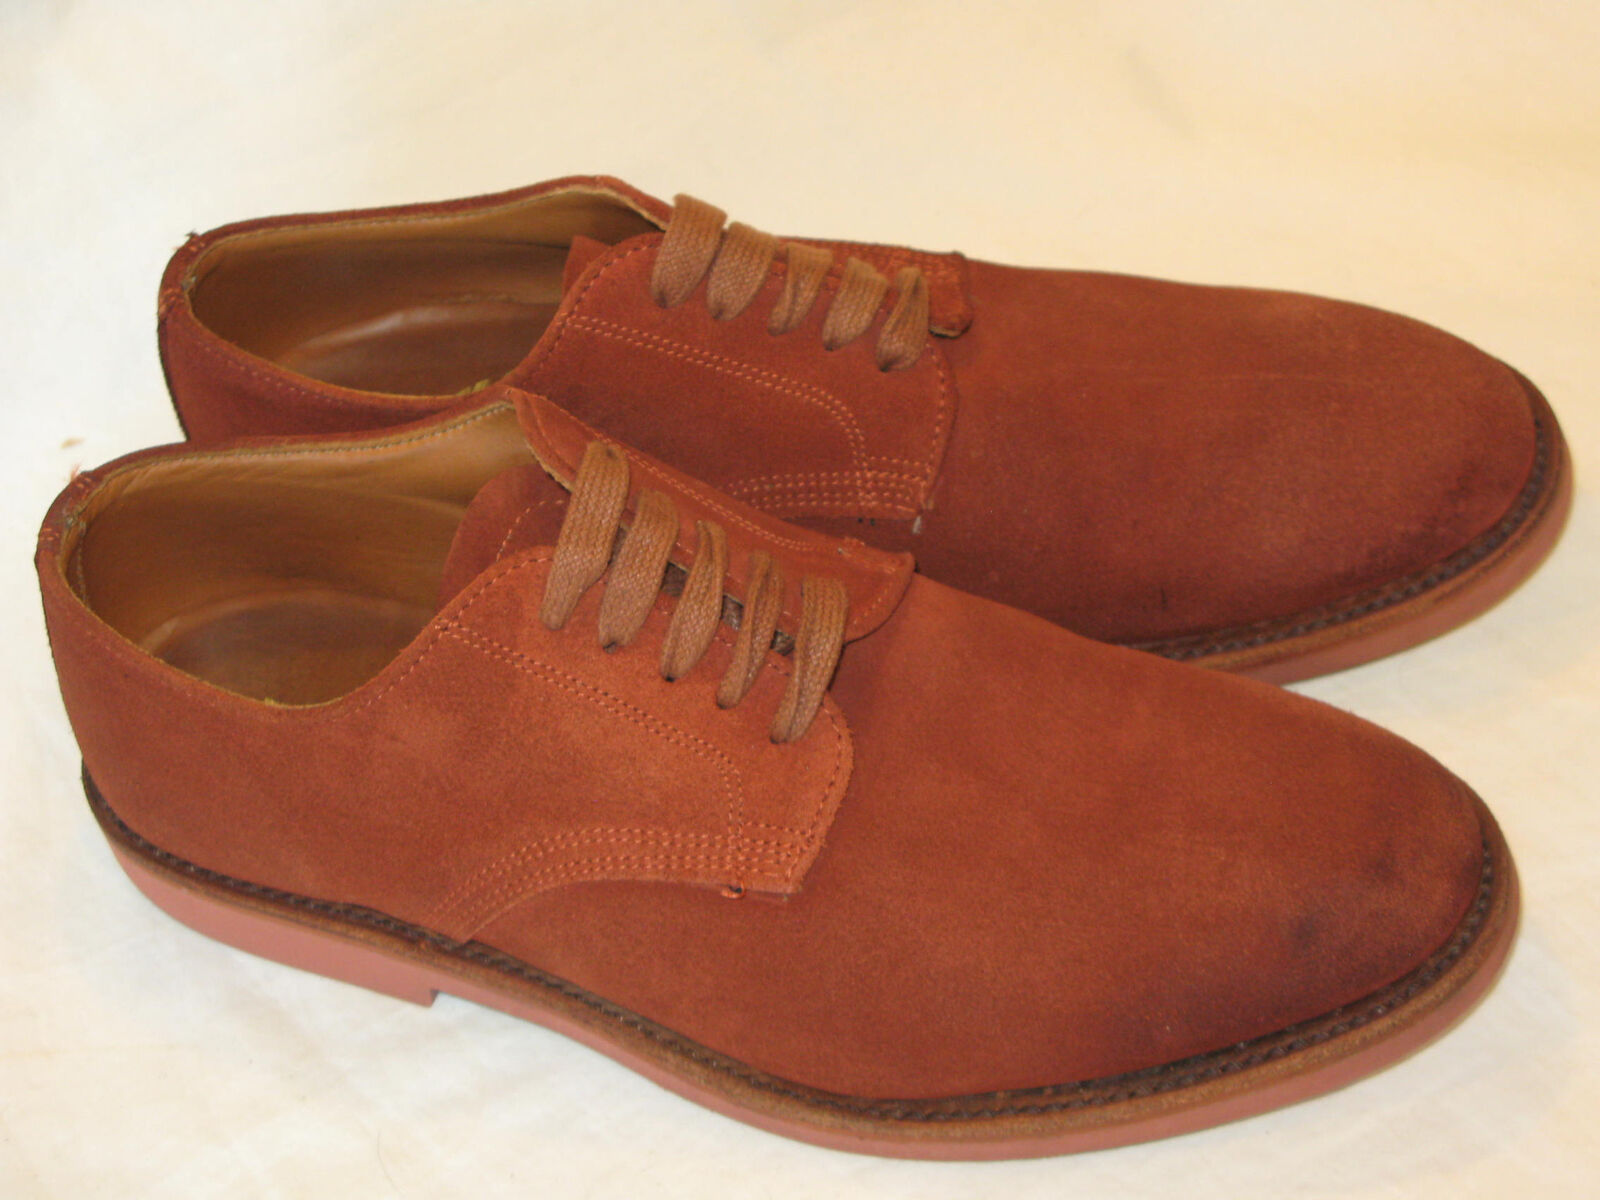 Walk Over Suede Leather Oxford shoes Mens Sz 9 M by Geo. Keith RUST